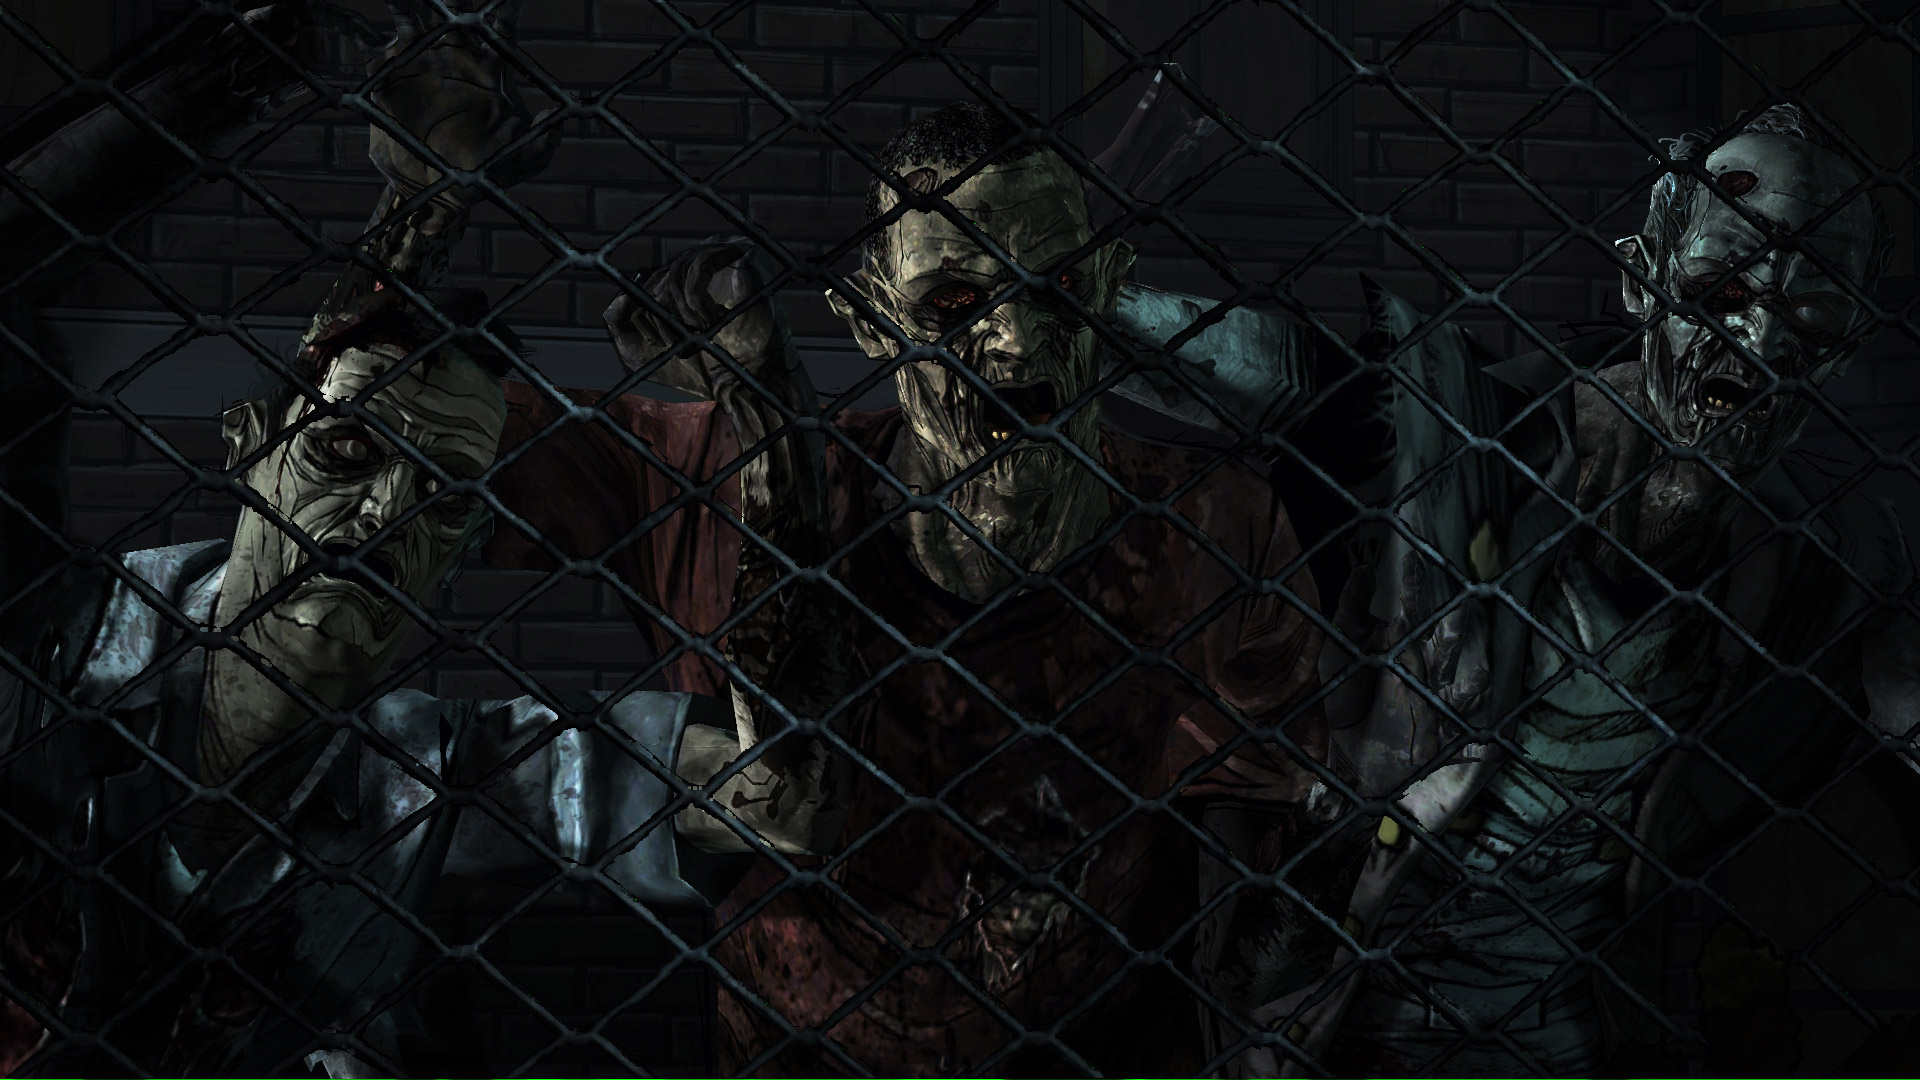 The Walking Dead Wallpaper in 1920x1080